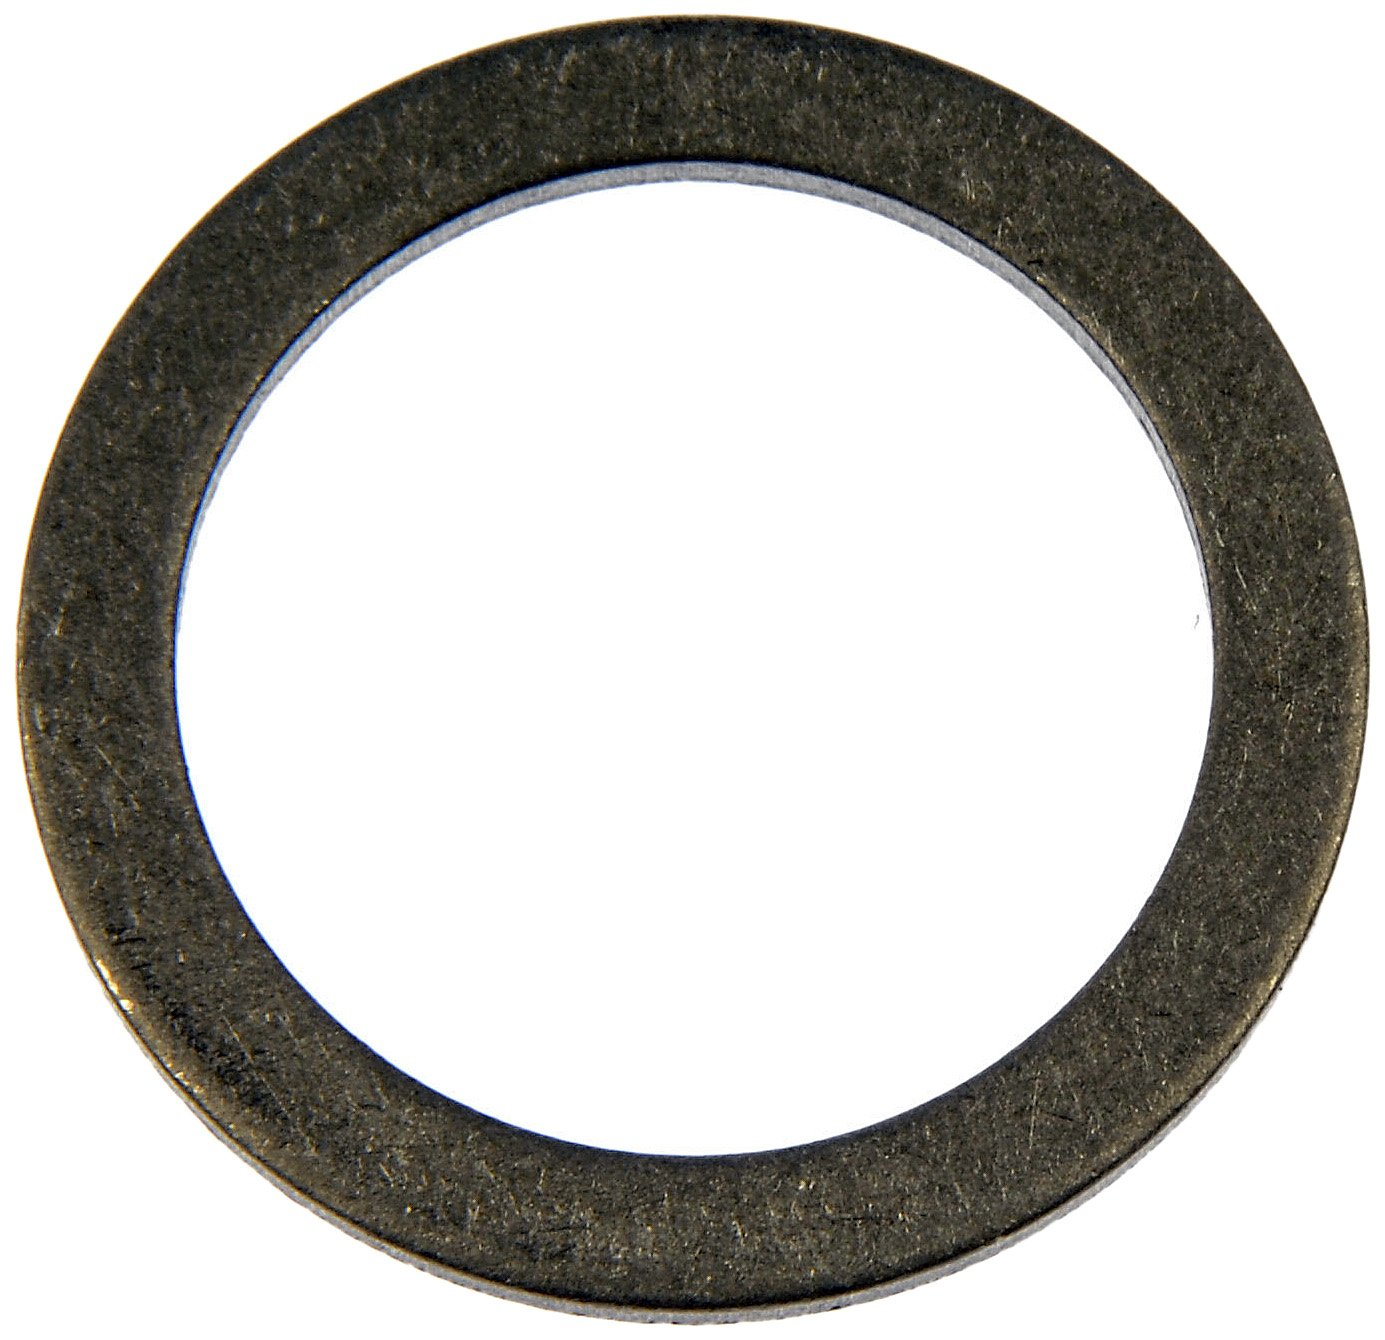 Dorman 095-149 Aluminum Oil Drain Plug Gasket - Fits M18, Pack of 10 Dorman - Autograde